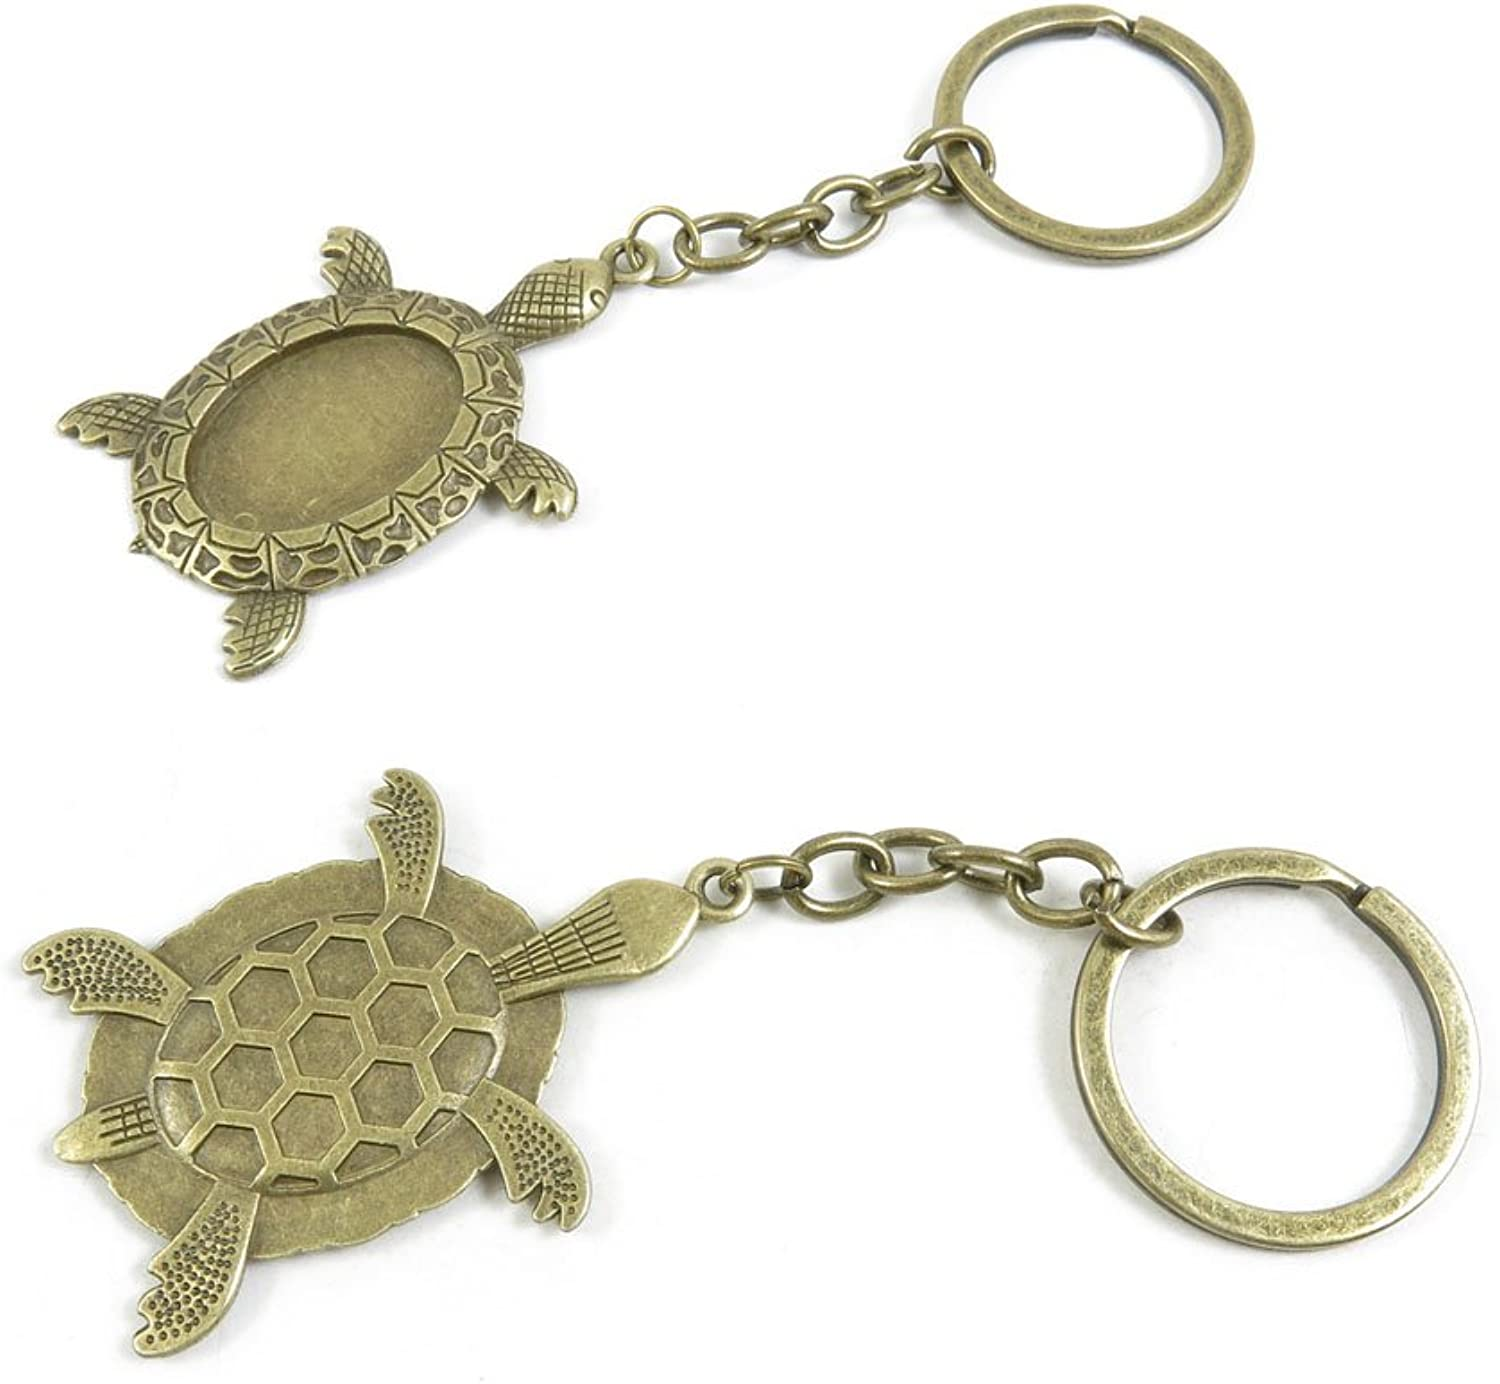 110 Pieces Fashion Jewelry Keyring Keychain Door Car Key Tag Ring Chain Supplier Supply Wholesale Bulk Lots H9EC3 Tortoise Turtle Cabochon Frame Setting